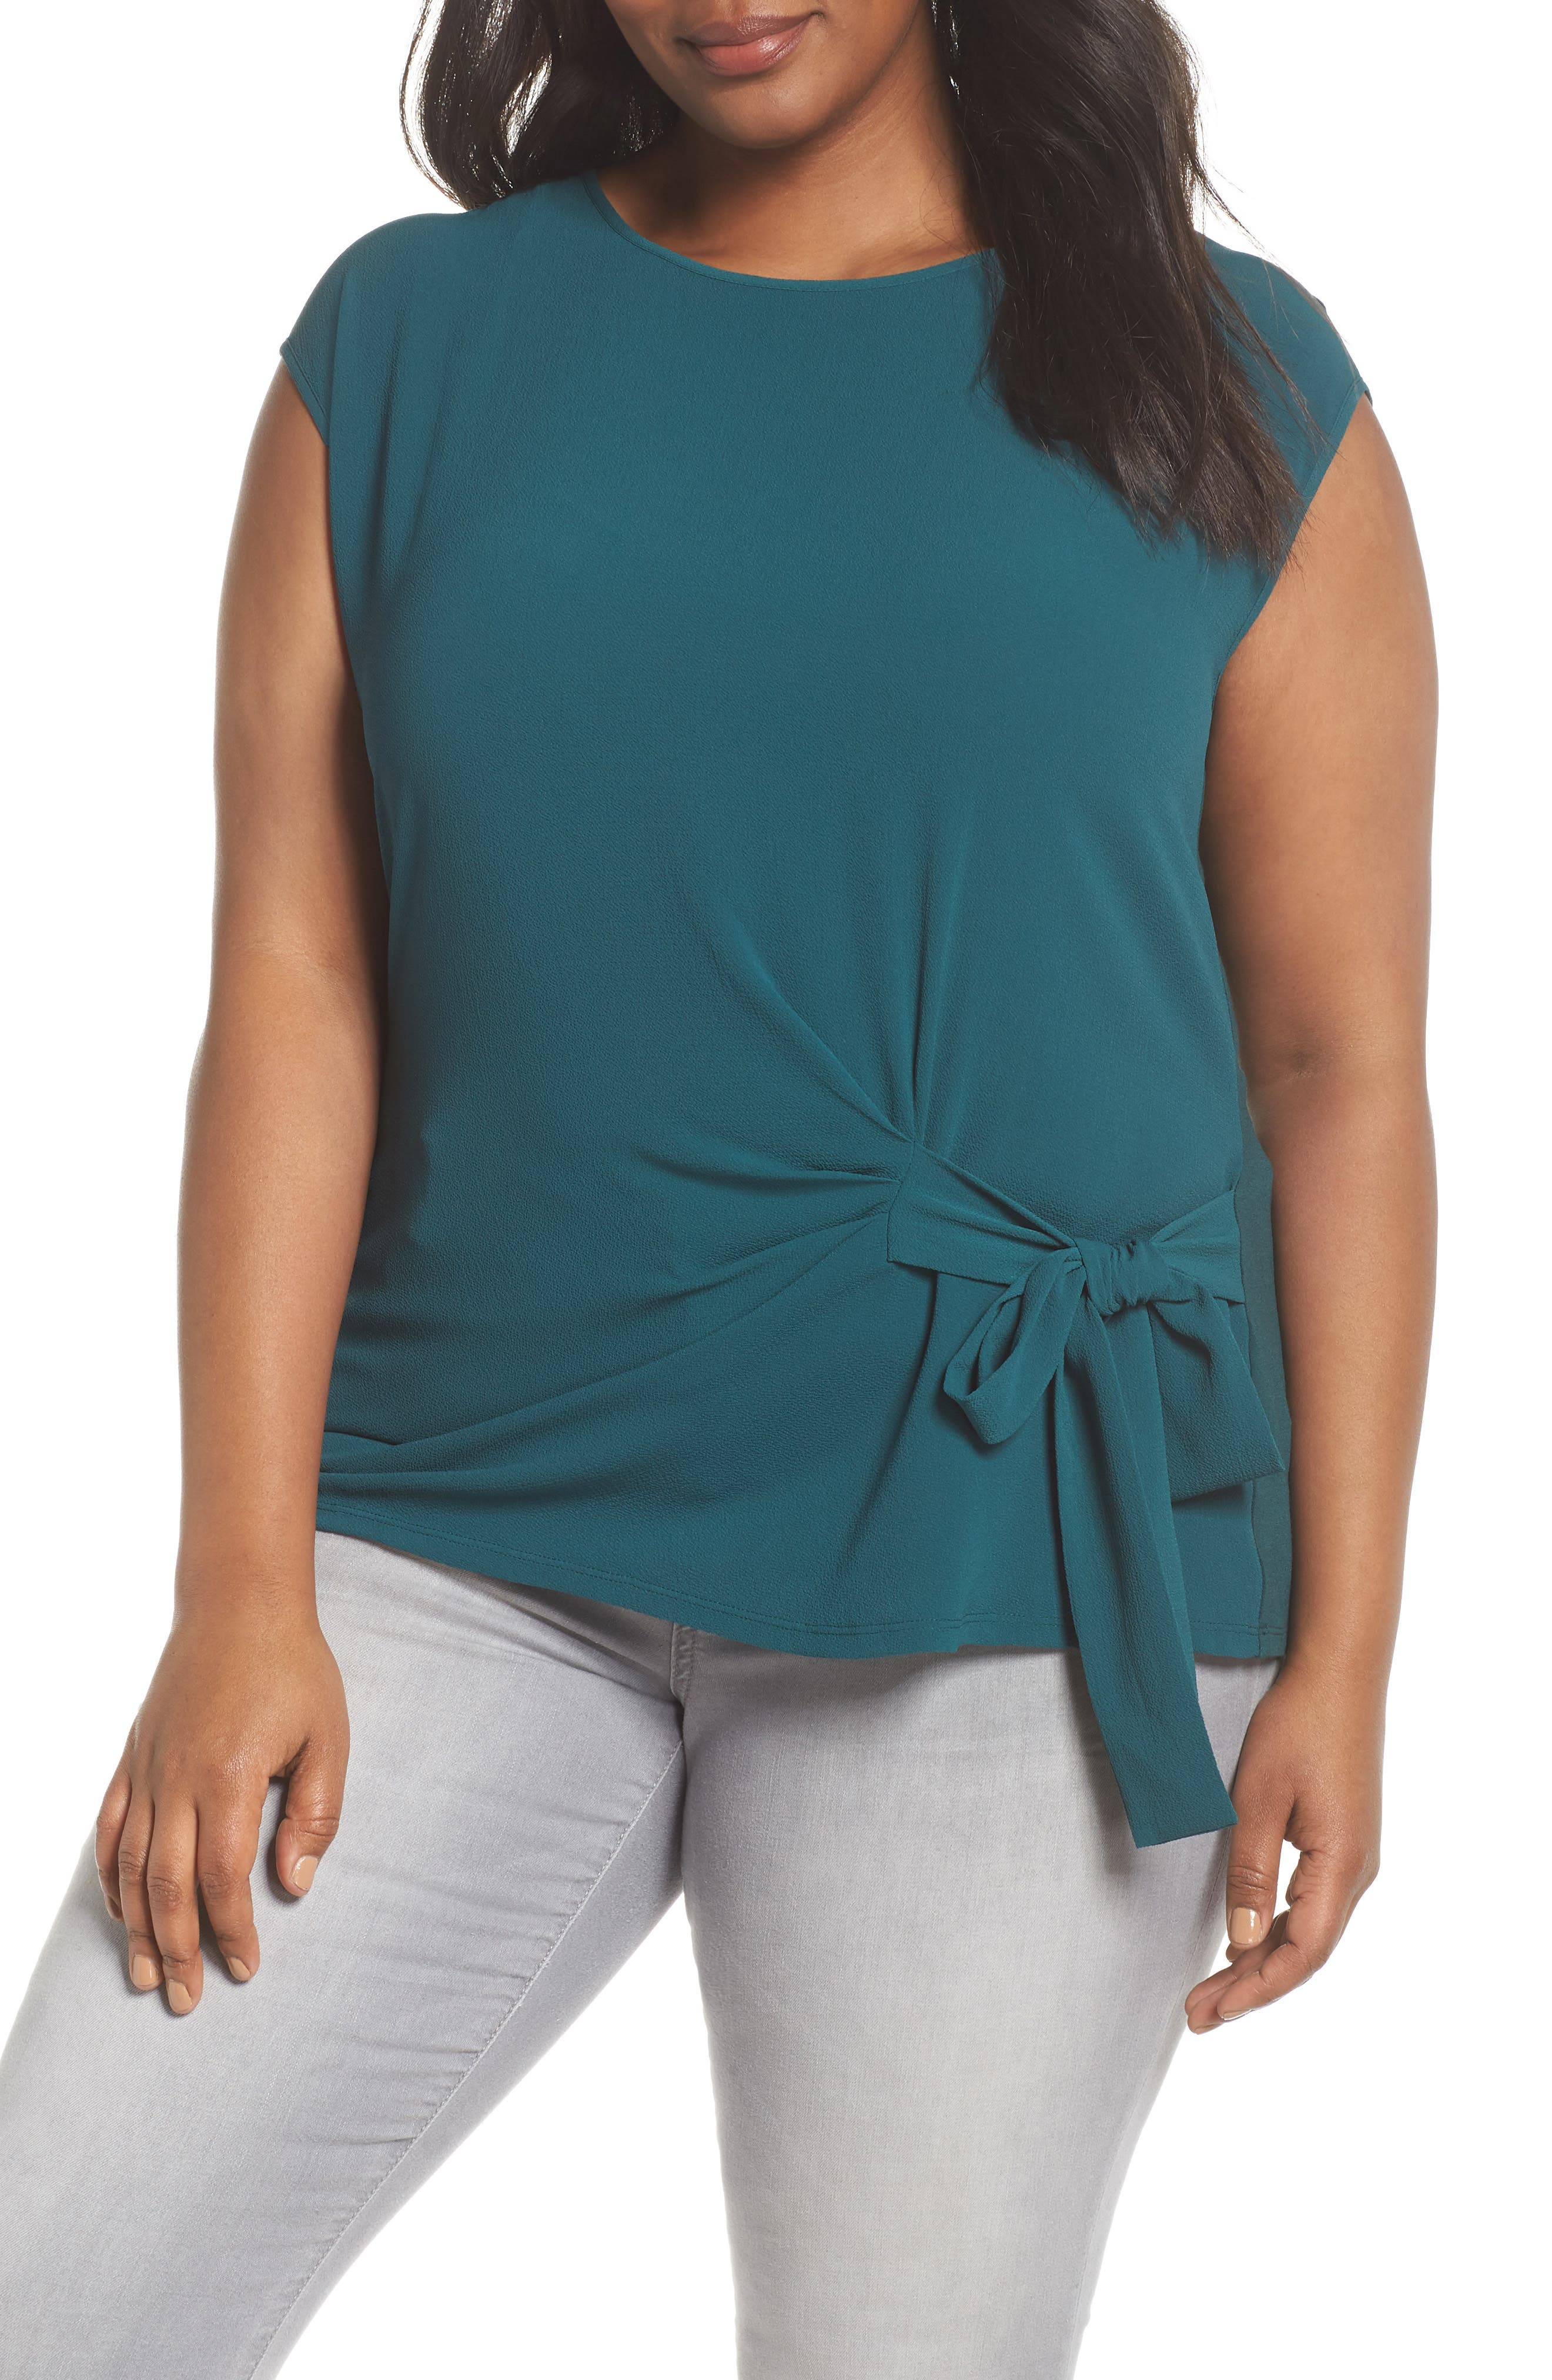 VINCE CAMUTO Mixed Media Tie Front Blouse, Main, color, 303